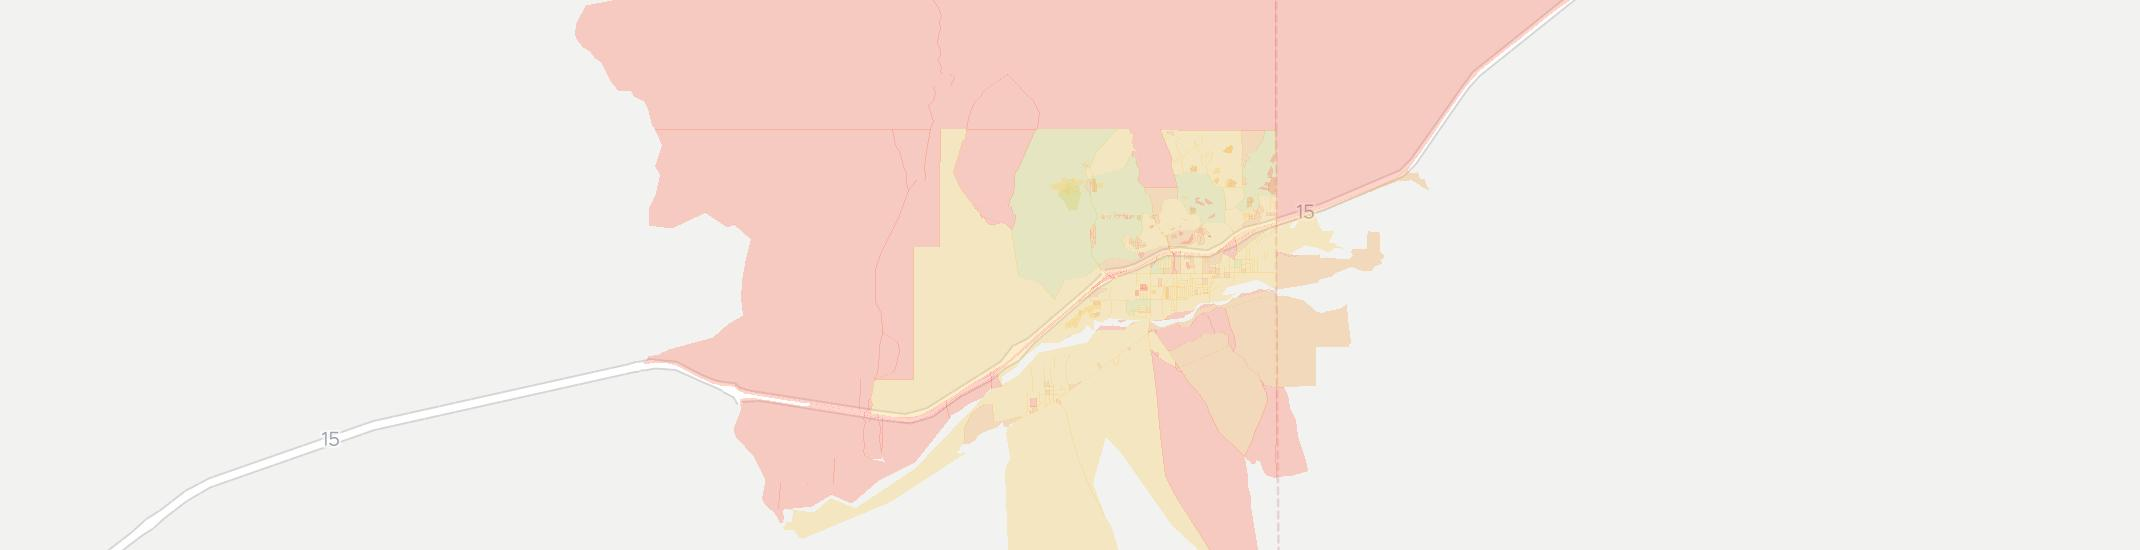 Mesquite Zip Code Map.Internet Providers In Mesquite Nv Compare 11 Providers